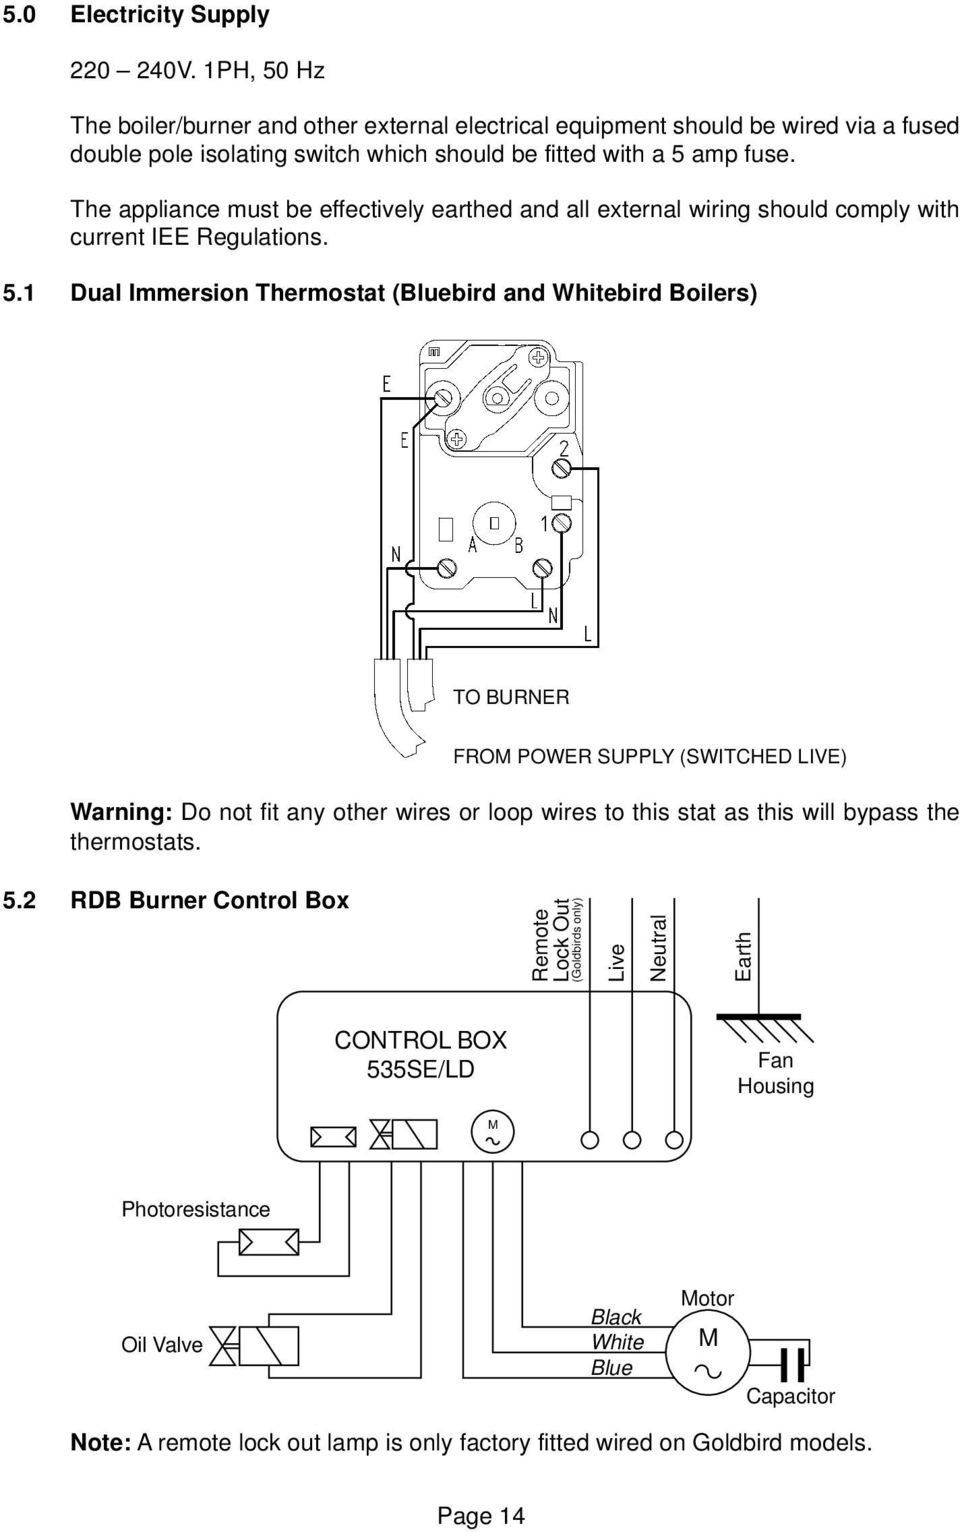 Installation Servicing Manual For Pdf Mains Voltage Thermostat With 2 Wire Connection Earth The Appliance Must Be Effectively Earthed And All External Wiring Should Comply Current Iee Regulations